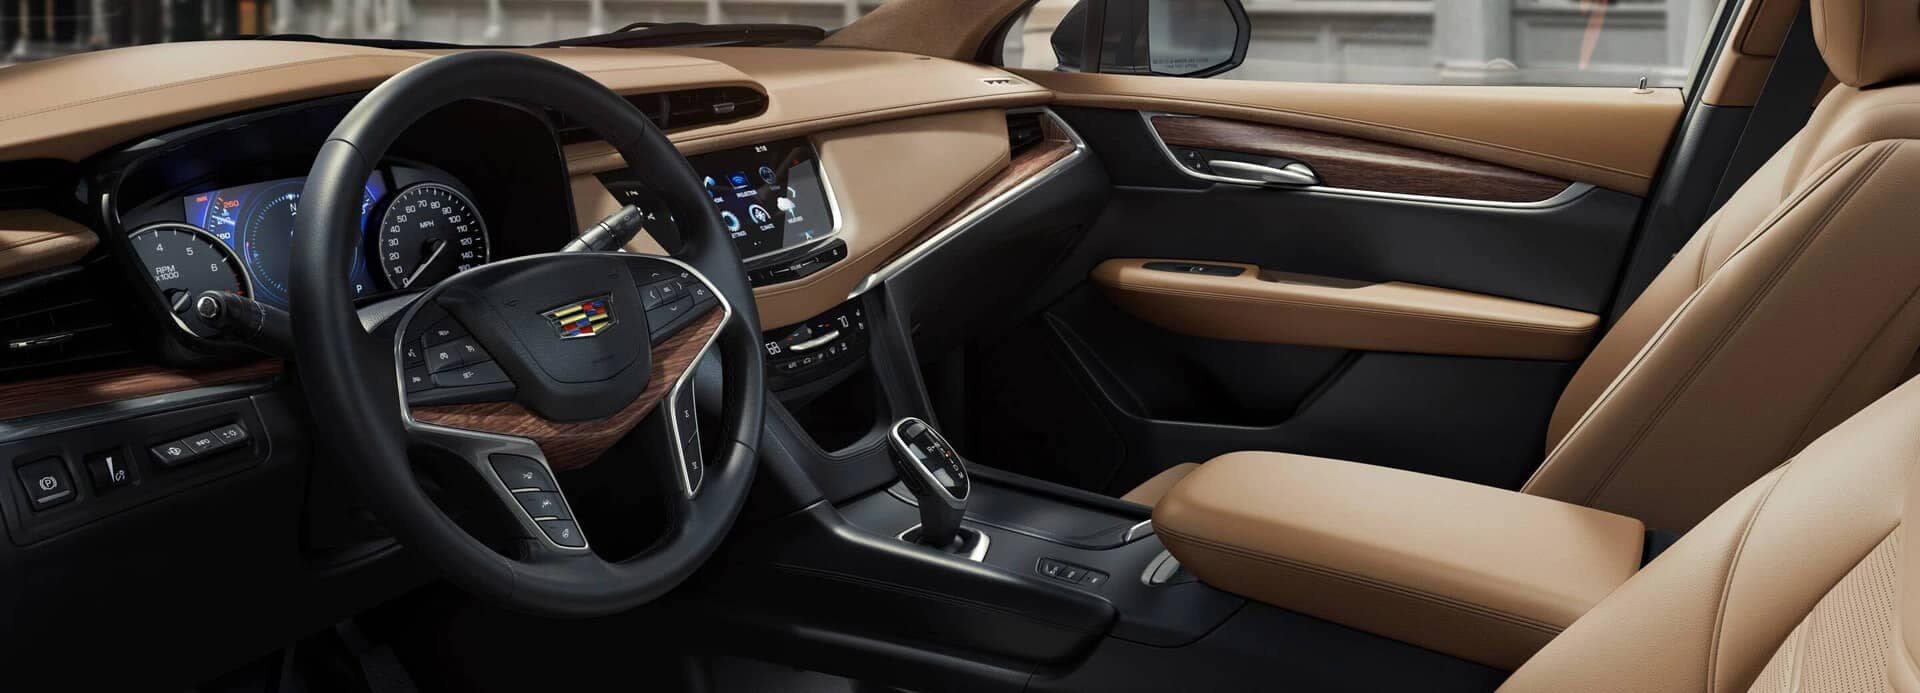 Cadillac XT5 Interior tan